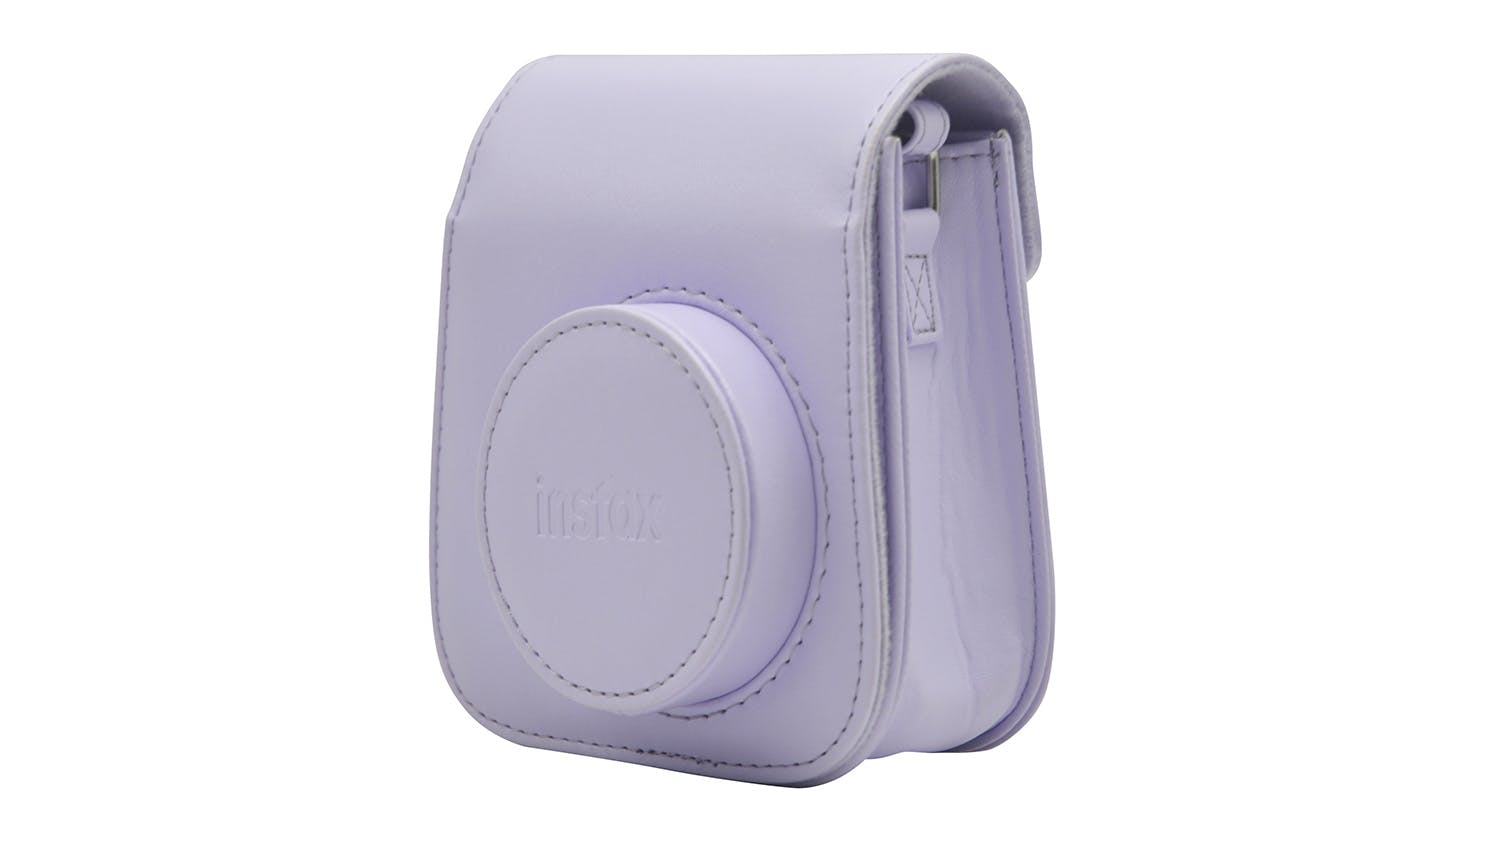 Instax Mini 11 Case - Lilac